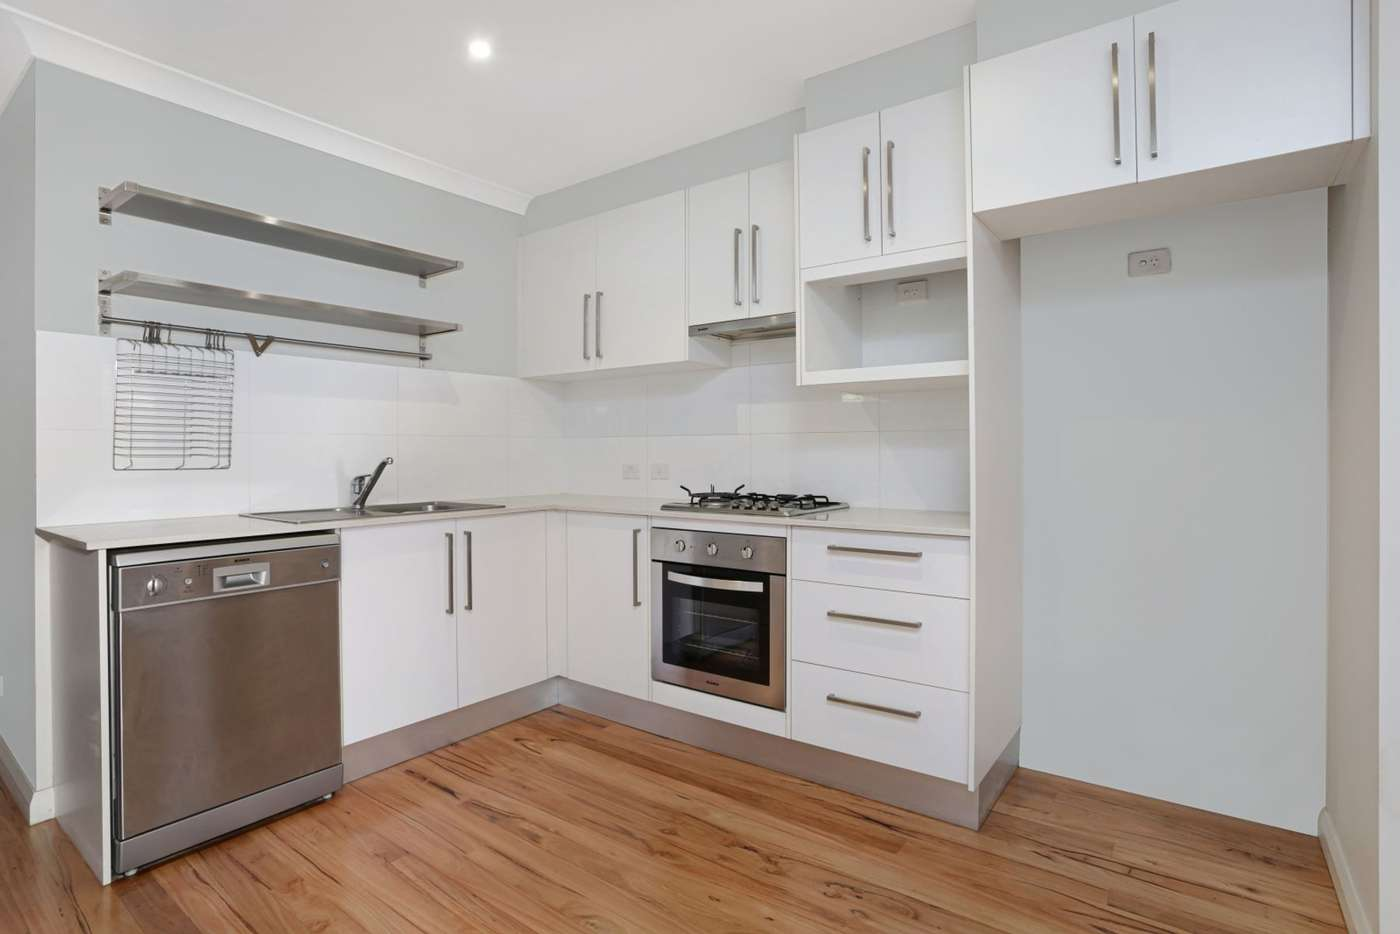 Fifth view of Homely apartment listing, Unit 3/3 Bairin Street, Campbelltown NSW 2560